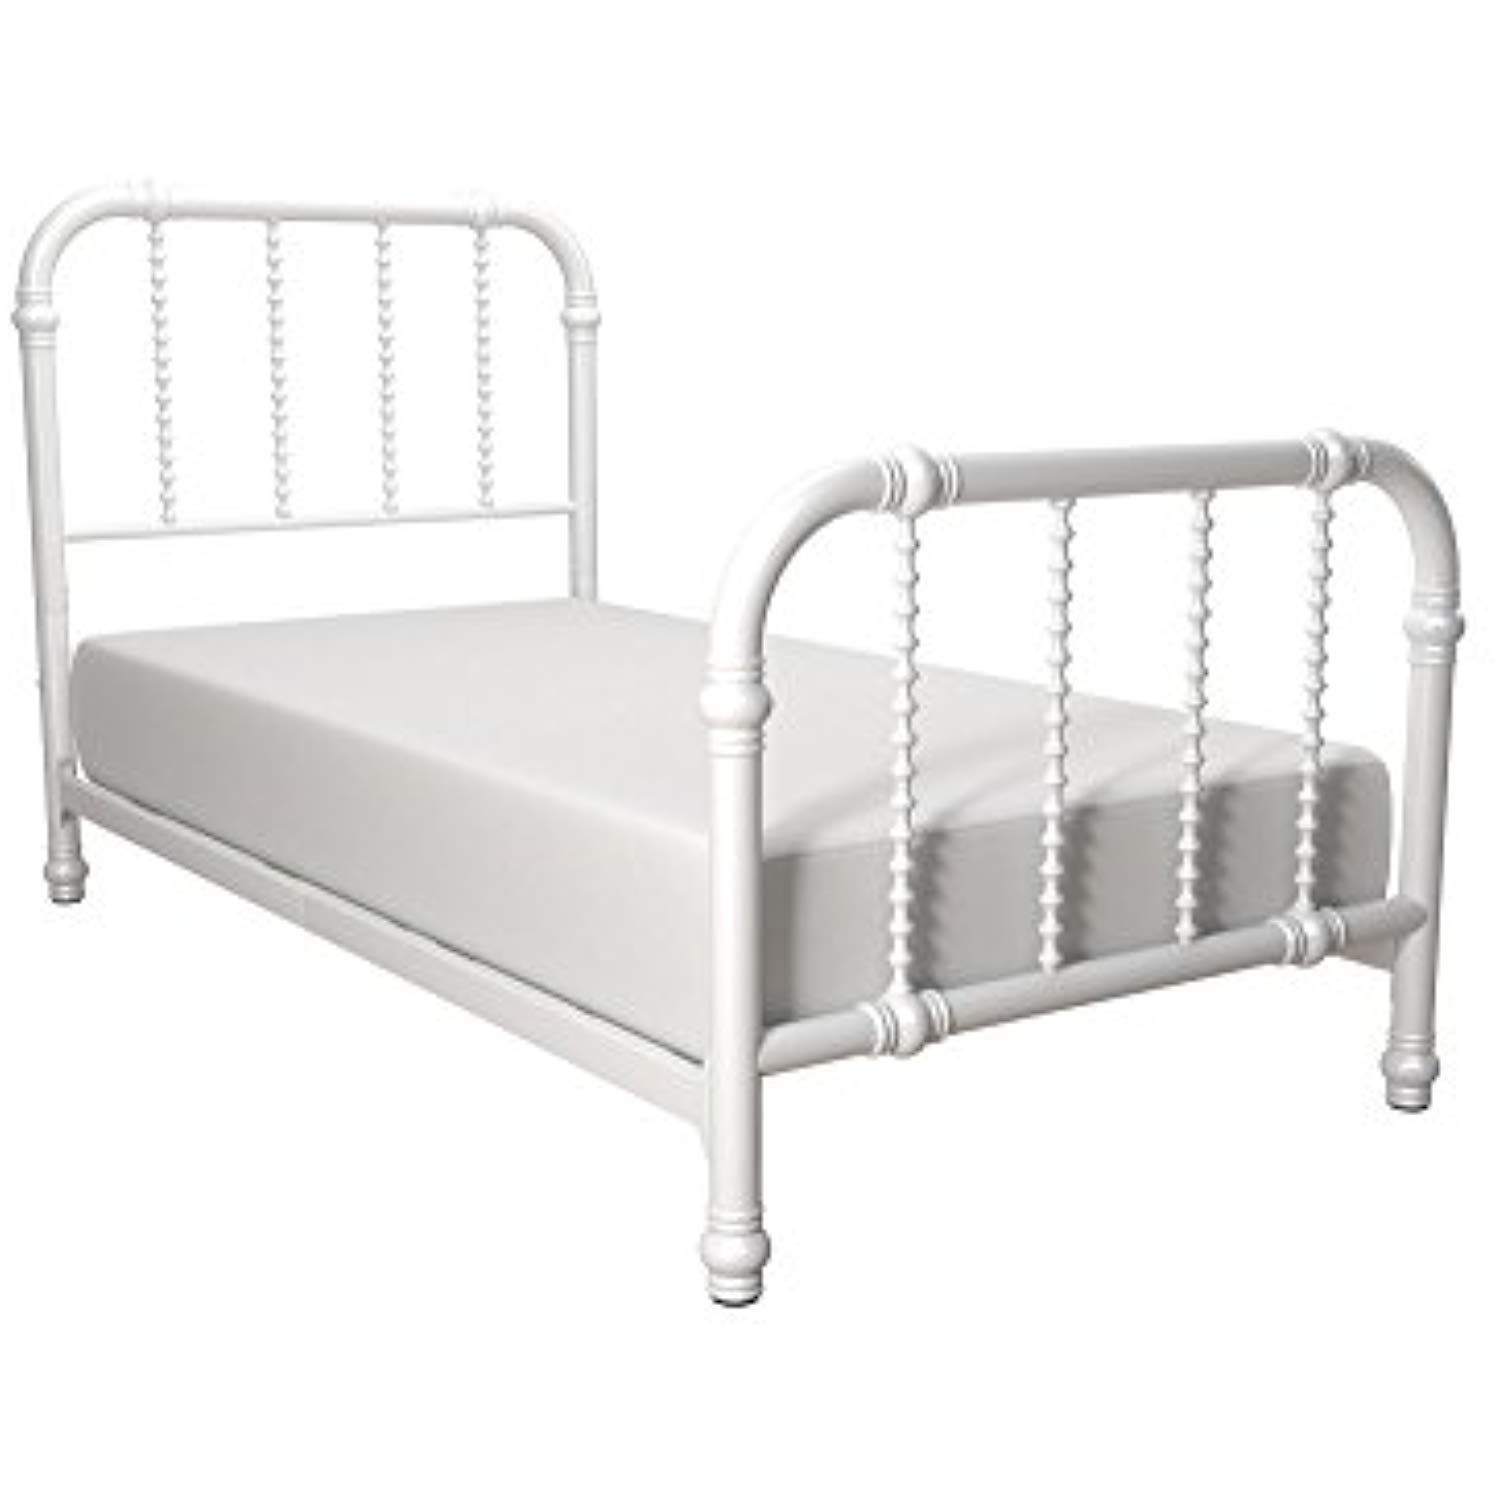 Dhp jenny lind metal bed frame in white with elegant scroll headboard and footboard twin size click on the image for additional details